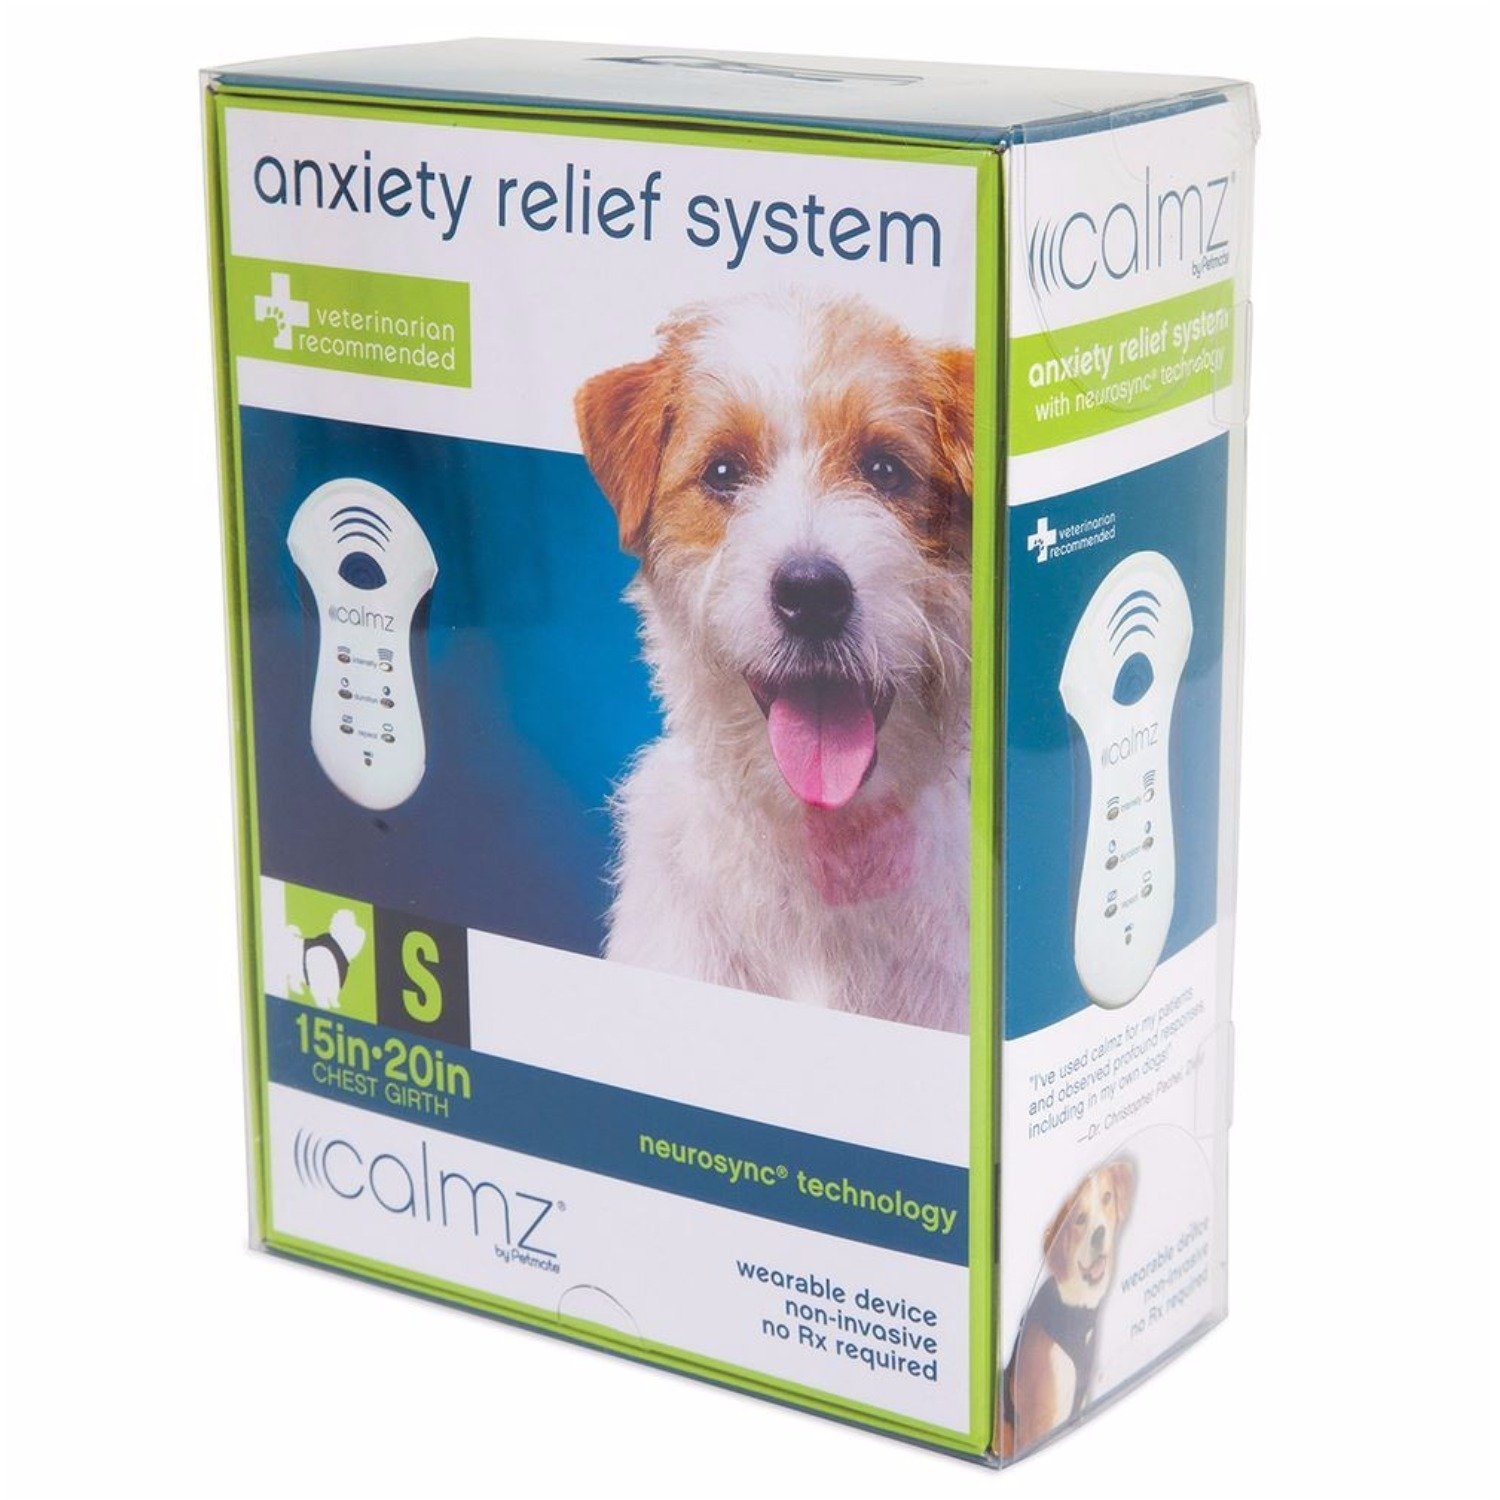 Petmate Calmz Anxiety Relief System for Dogs, Small by Petmate